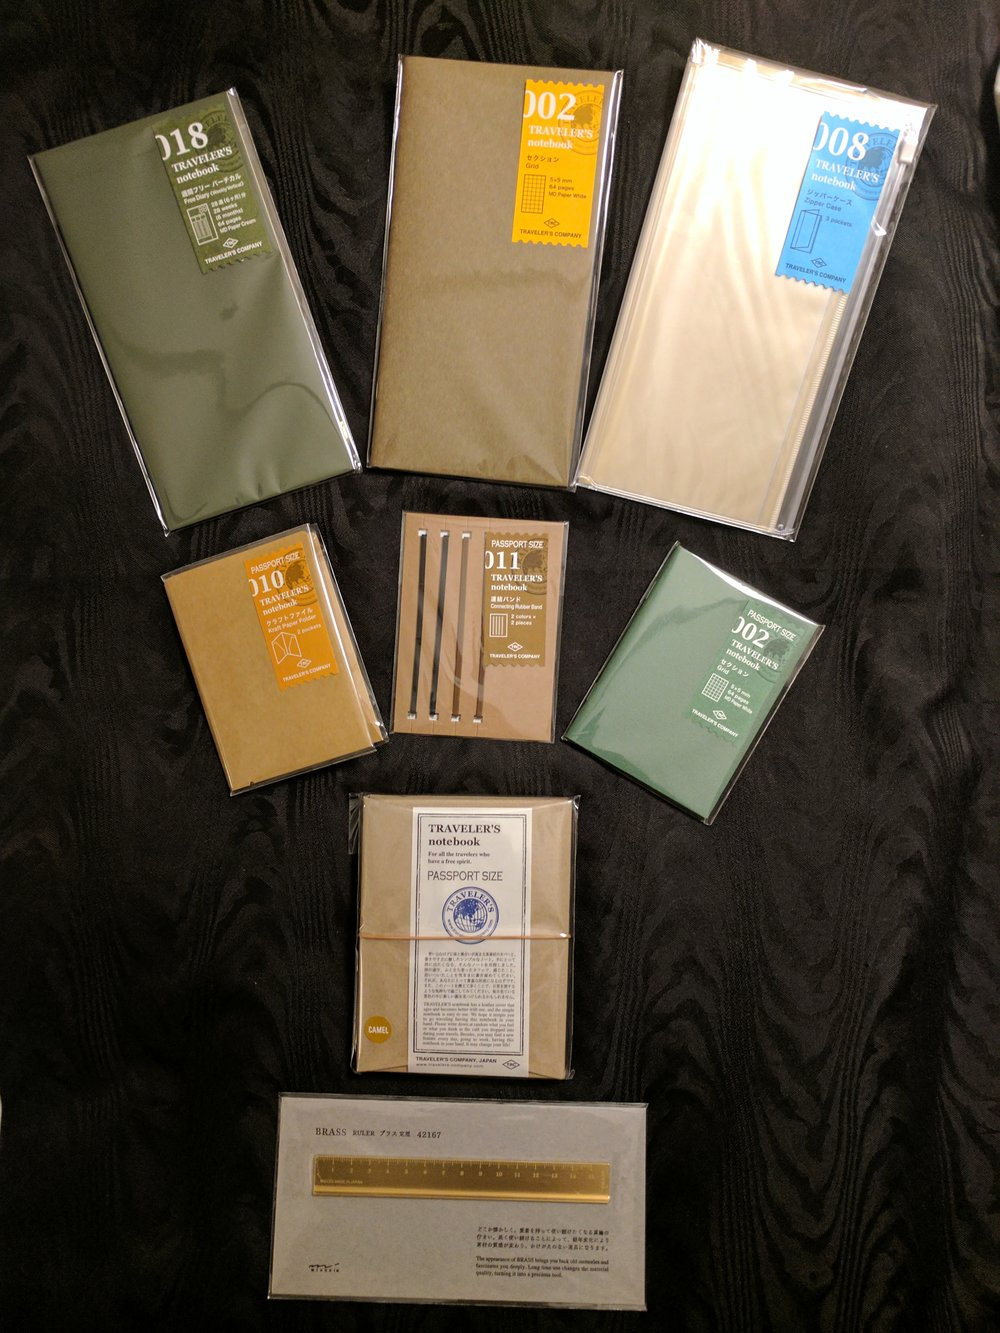 An example of some of the available inserts.